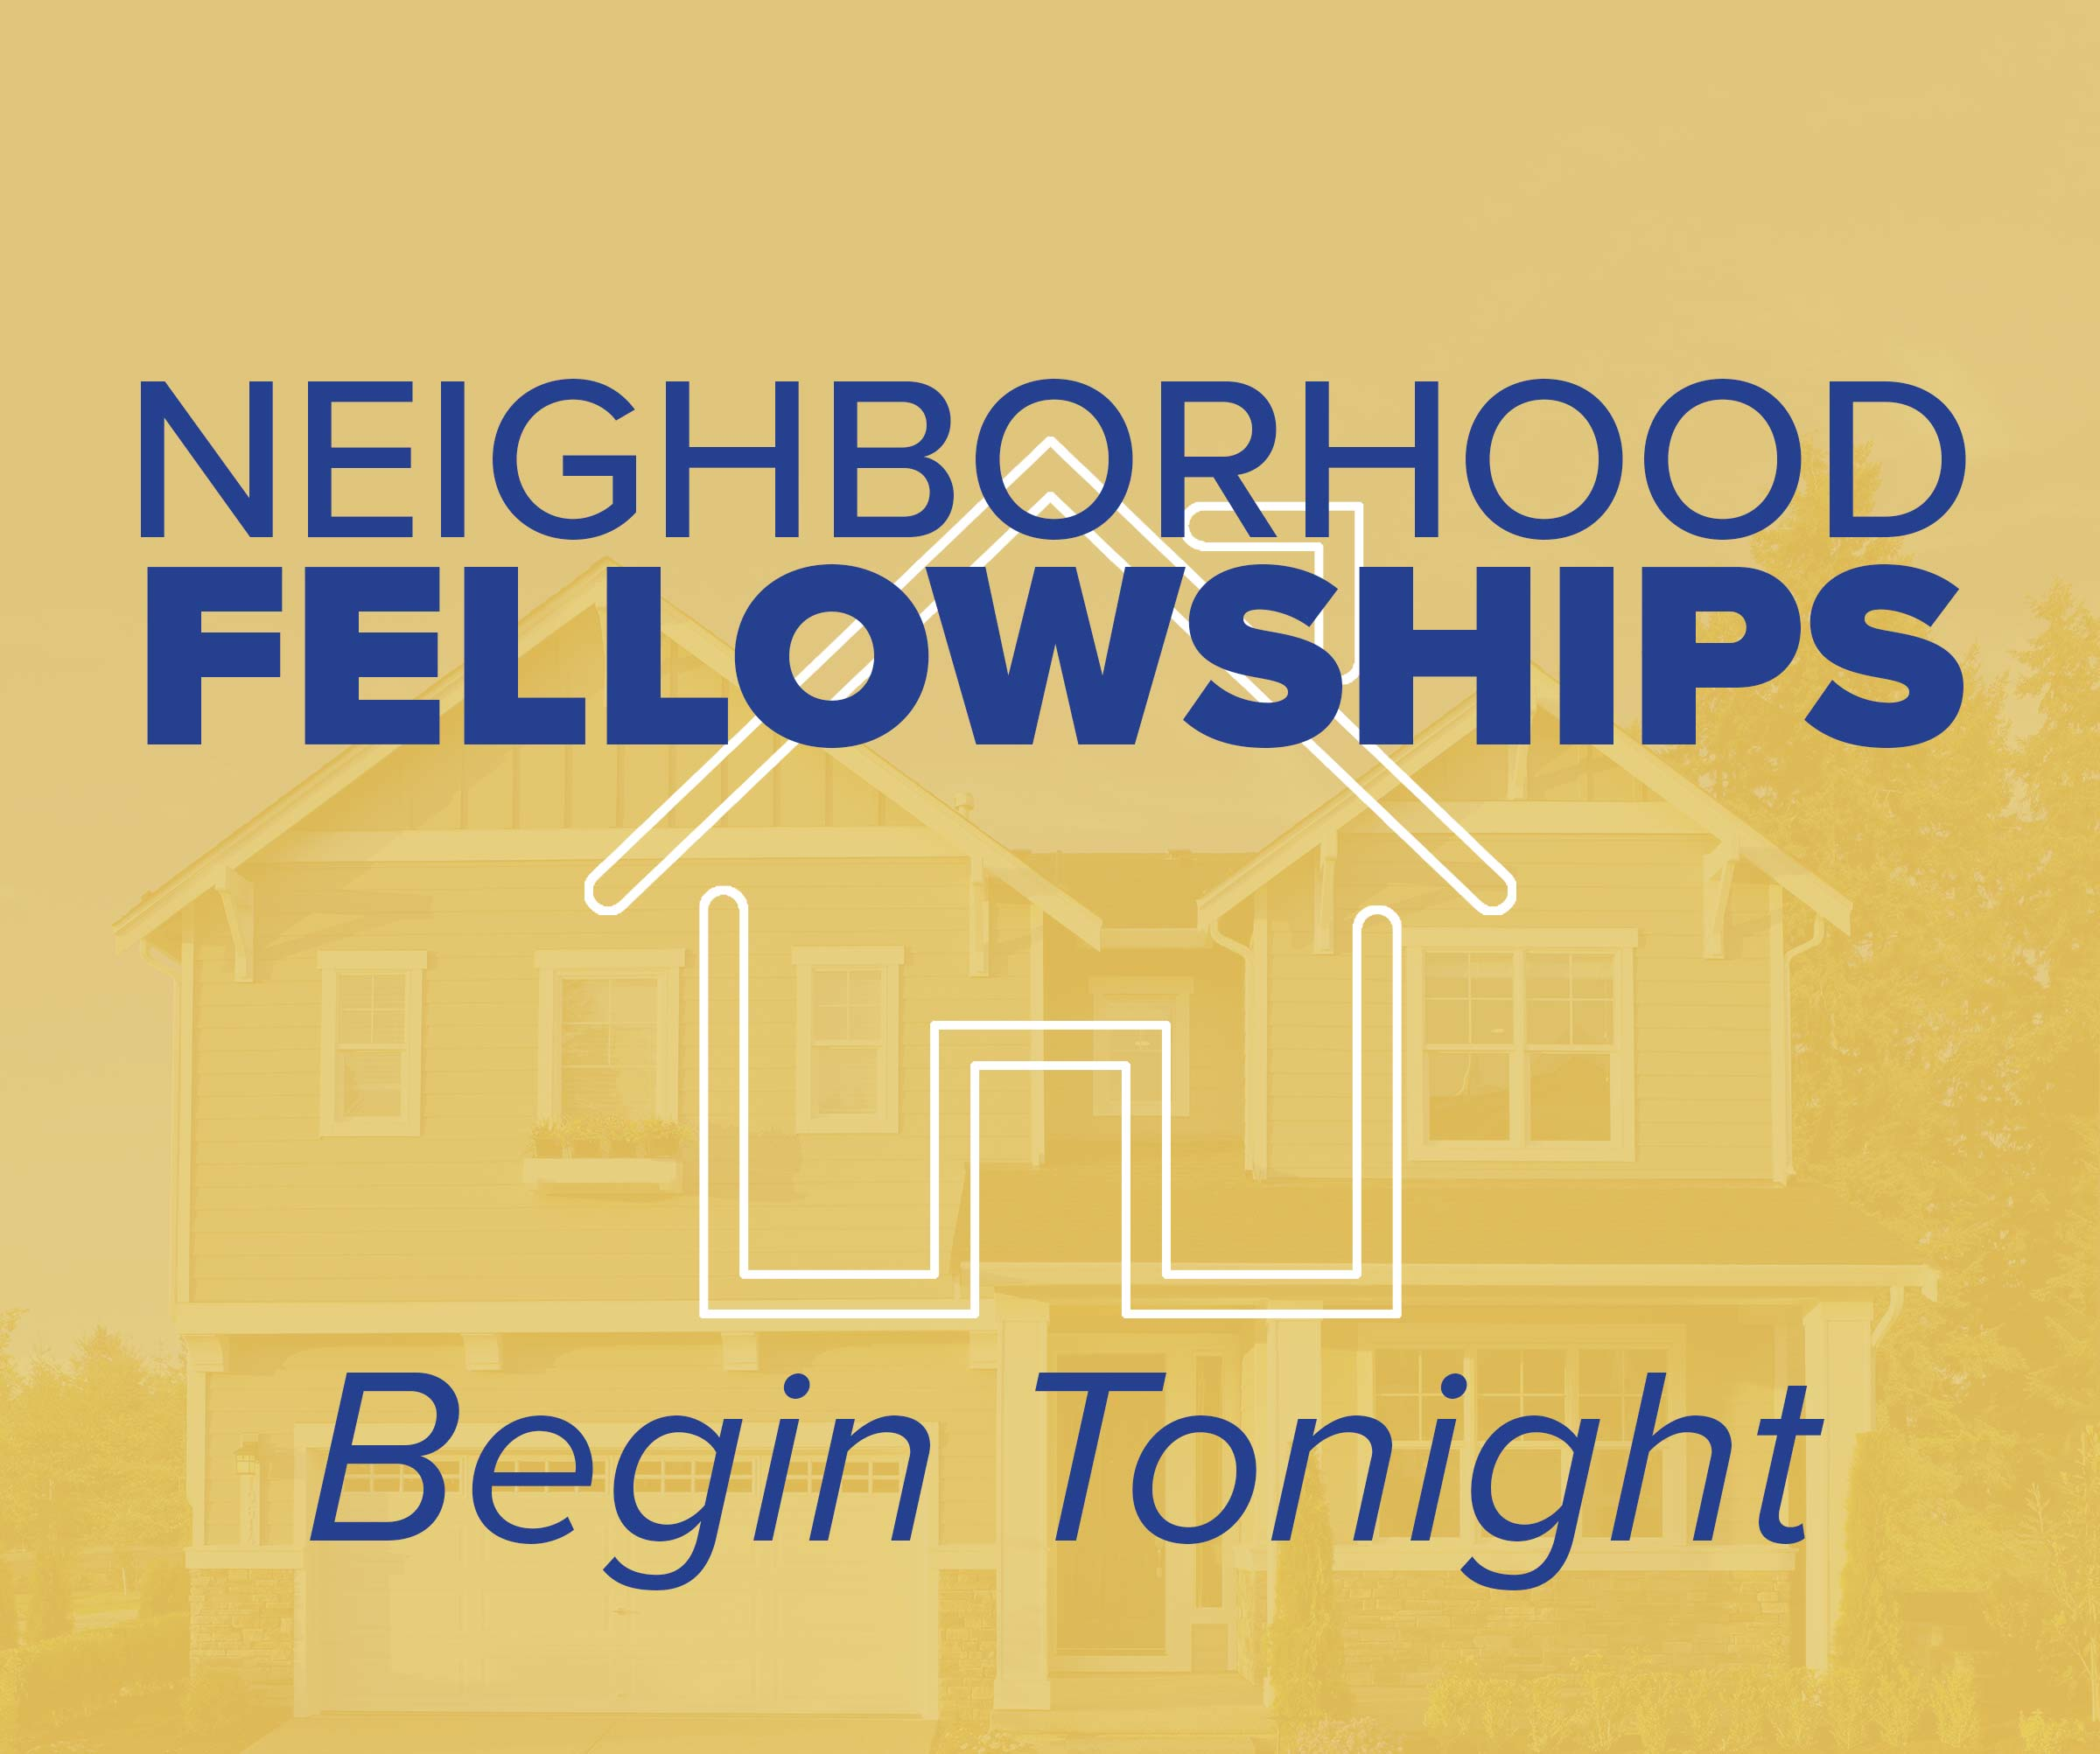 Neighborhood Fellowships Begin Tonight!